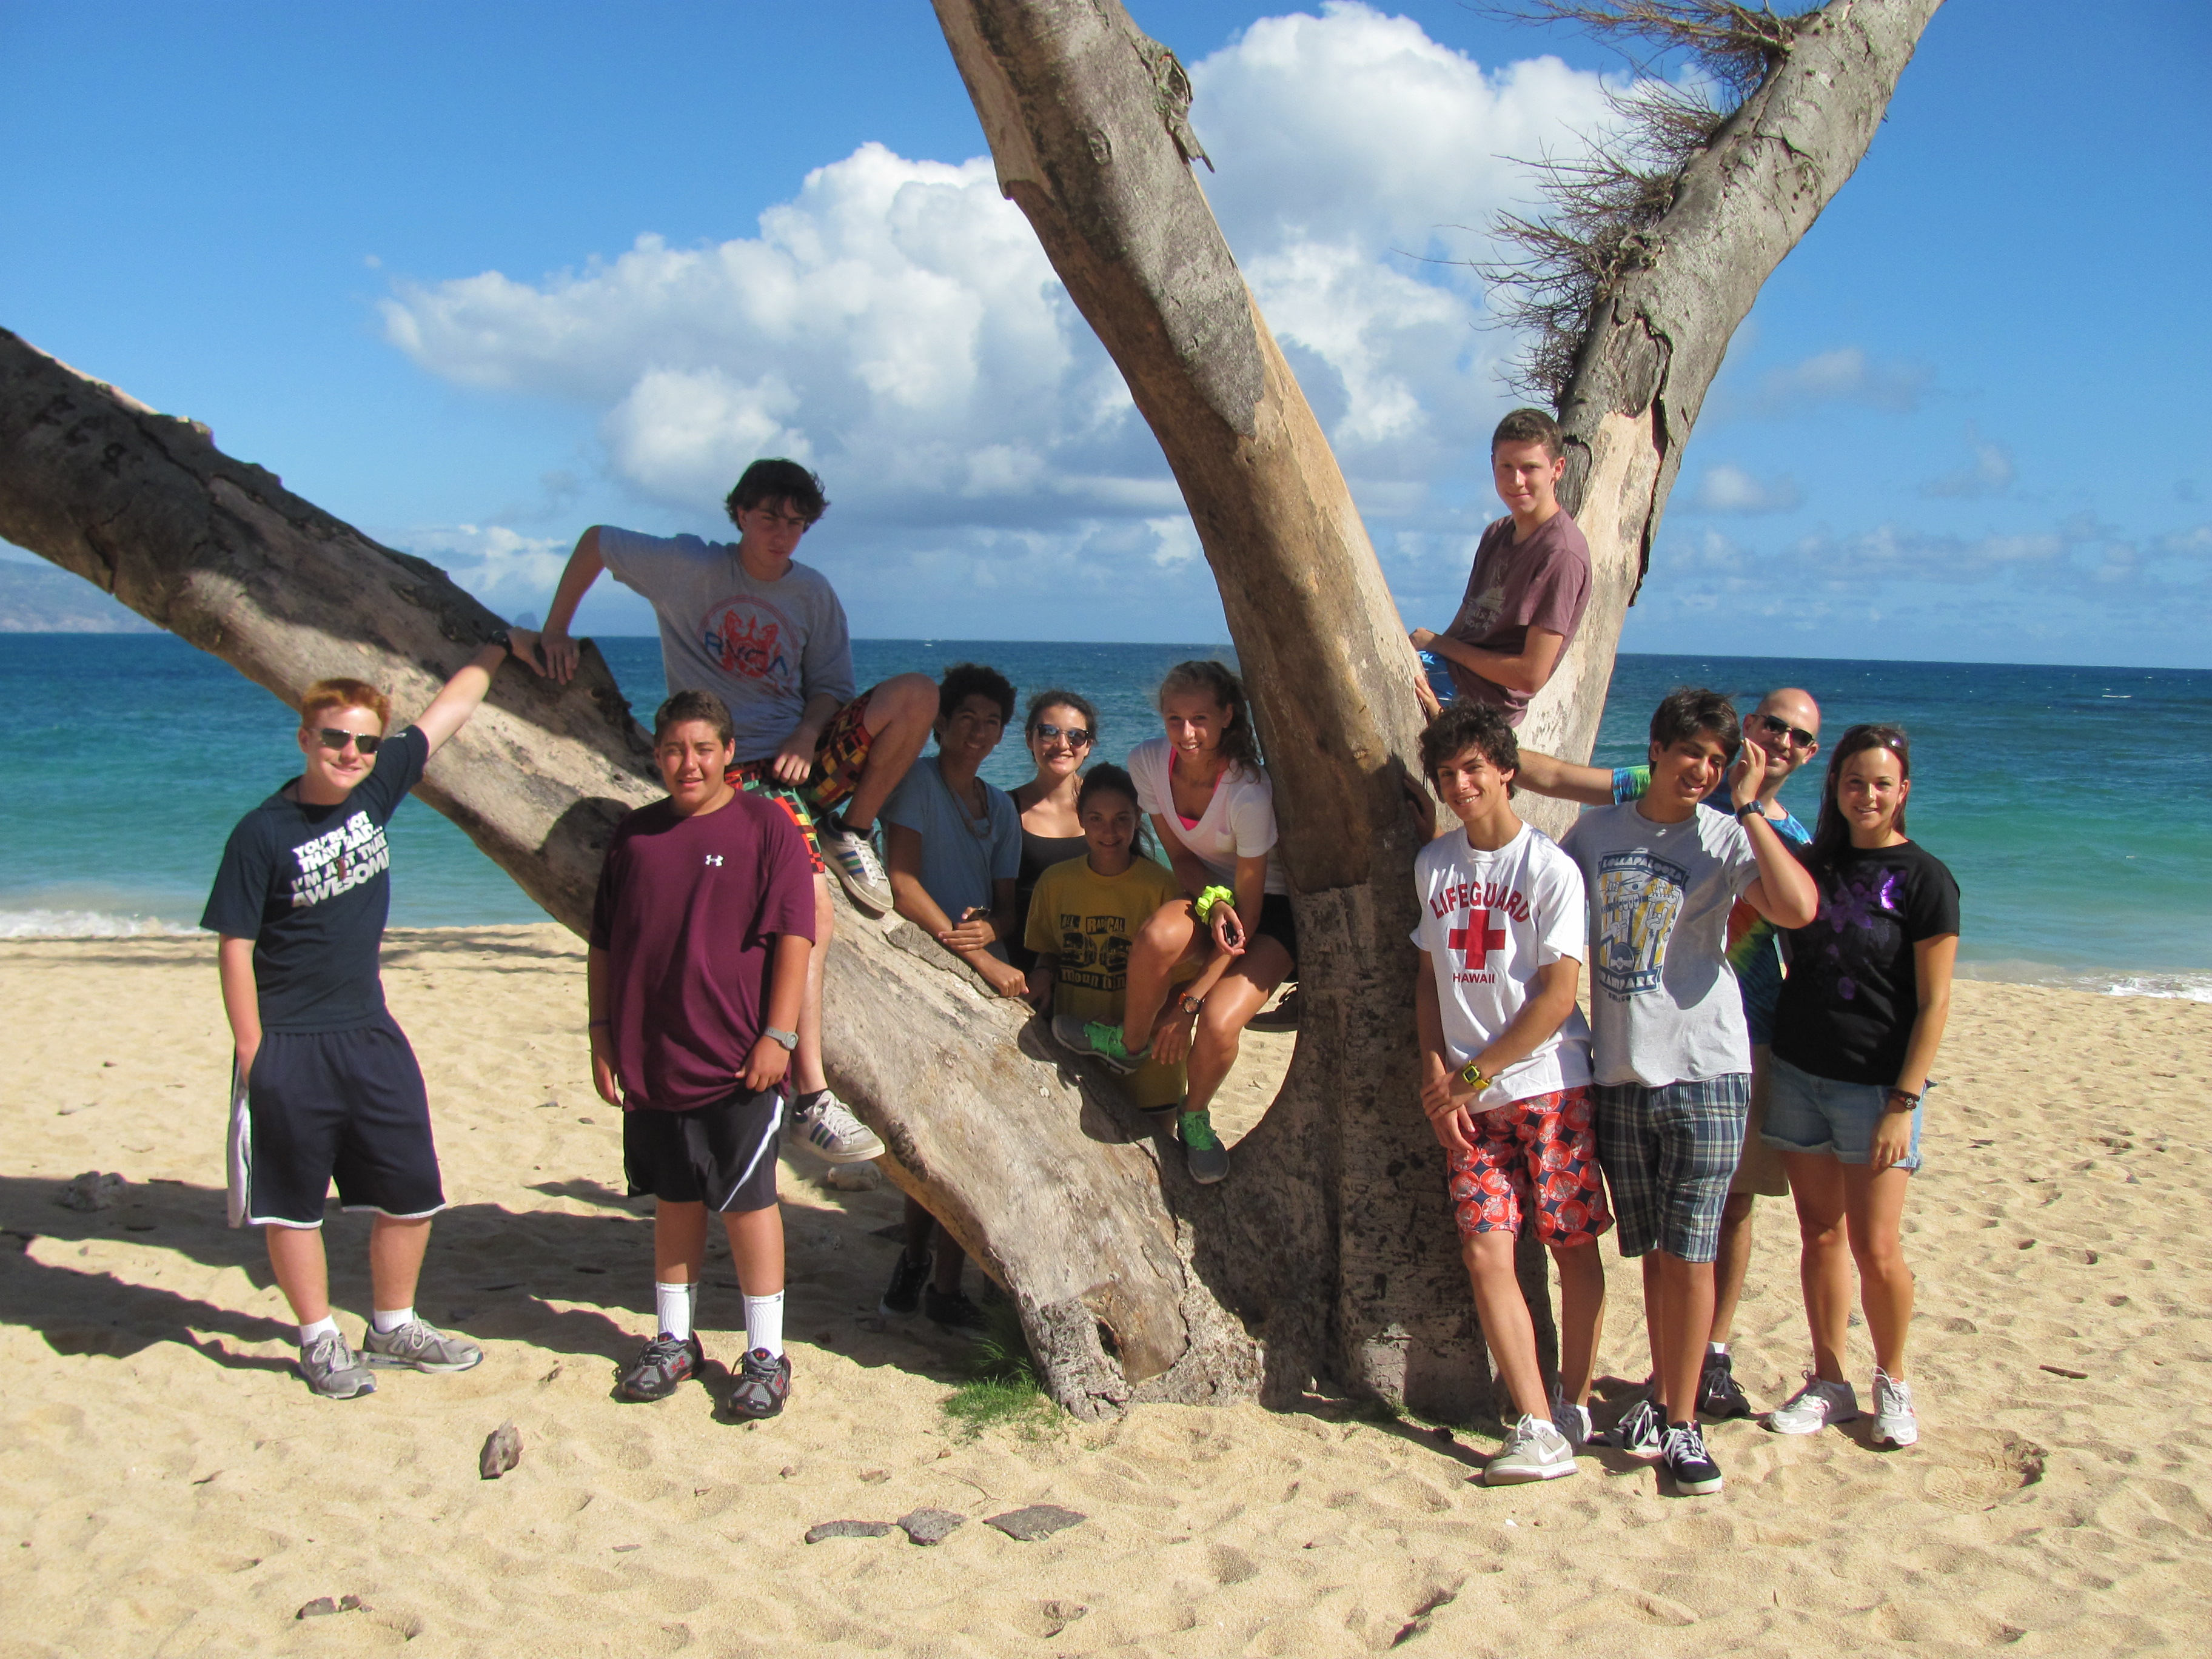 Hawaii Community Service at the Beach